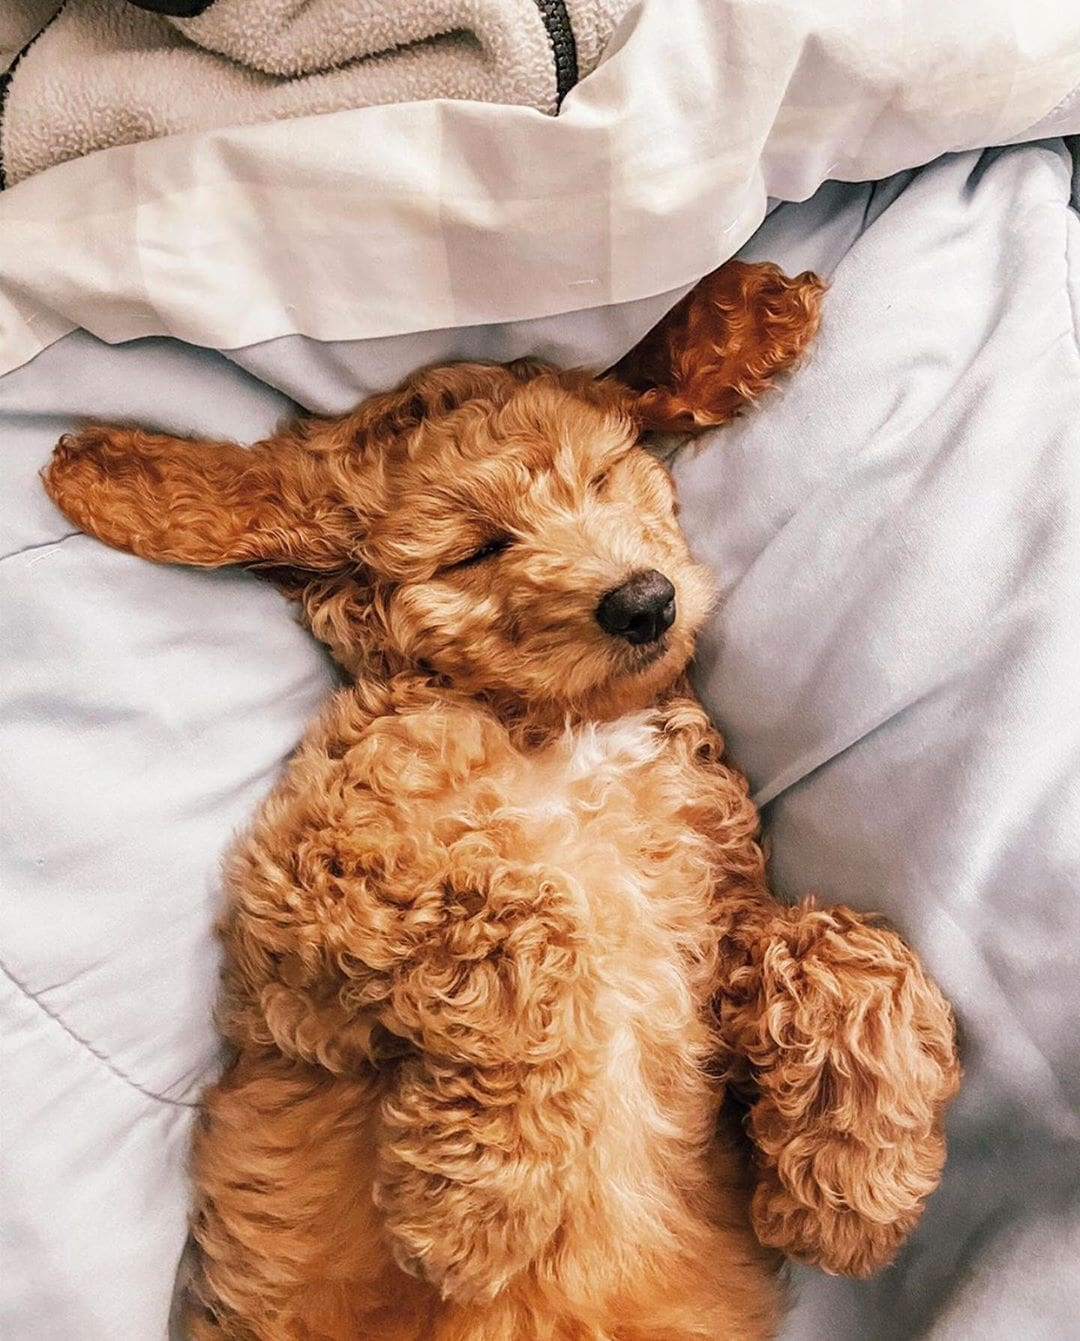 f1bb goldendoodle picture